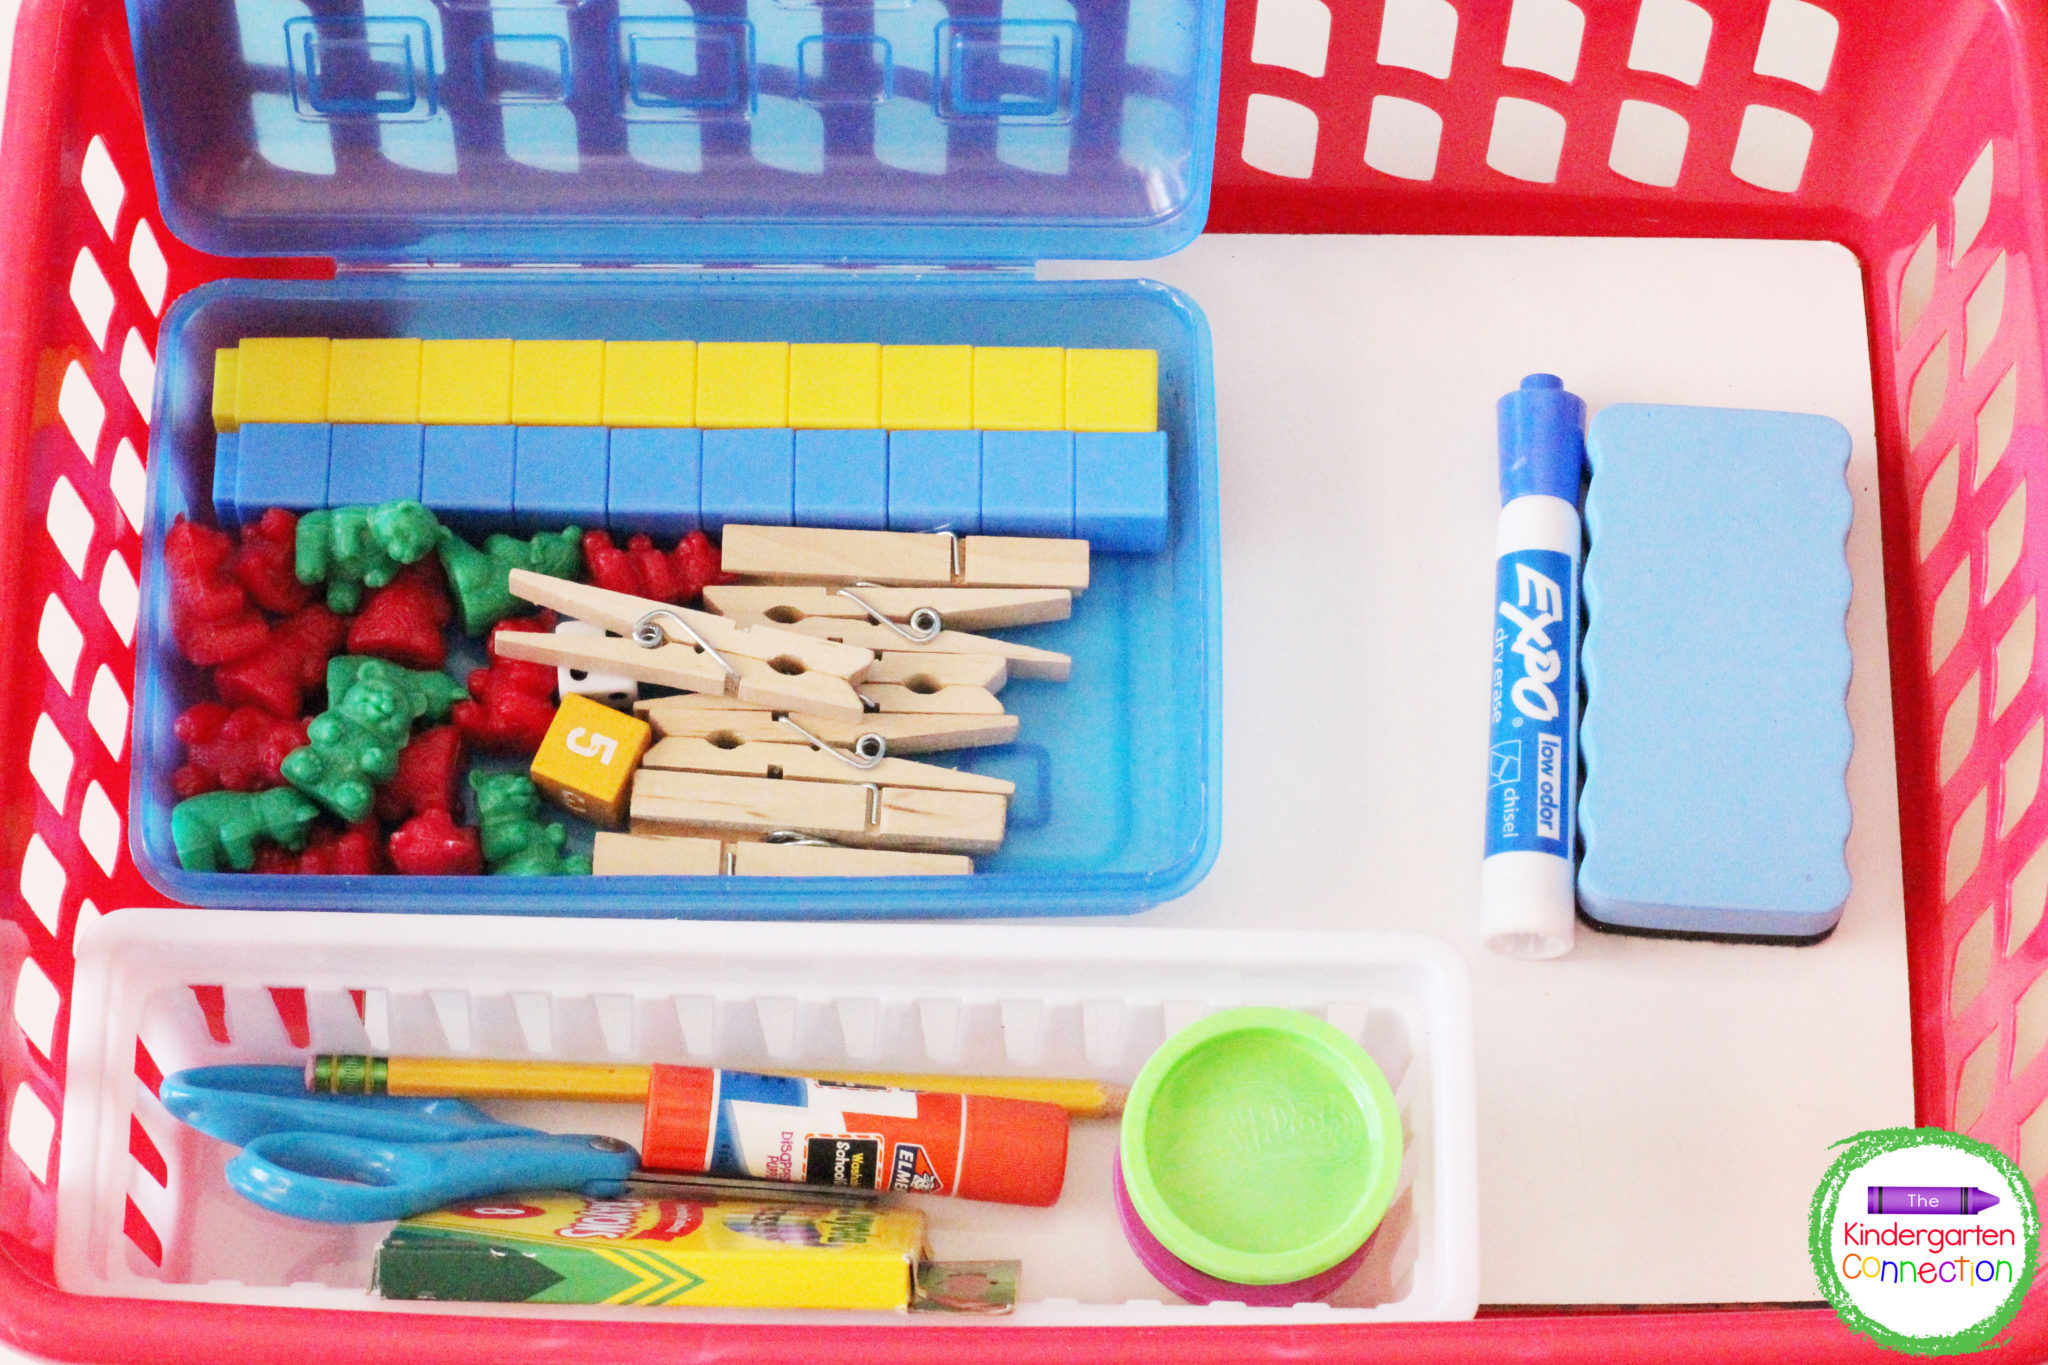 To minimize movement in the classroom, provide all the daily supplies needed in your student supply bins.